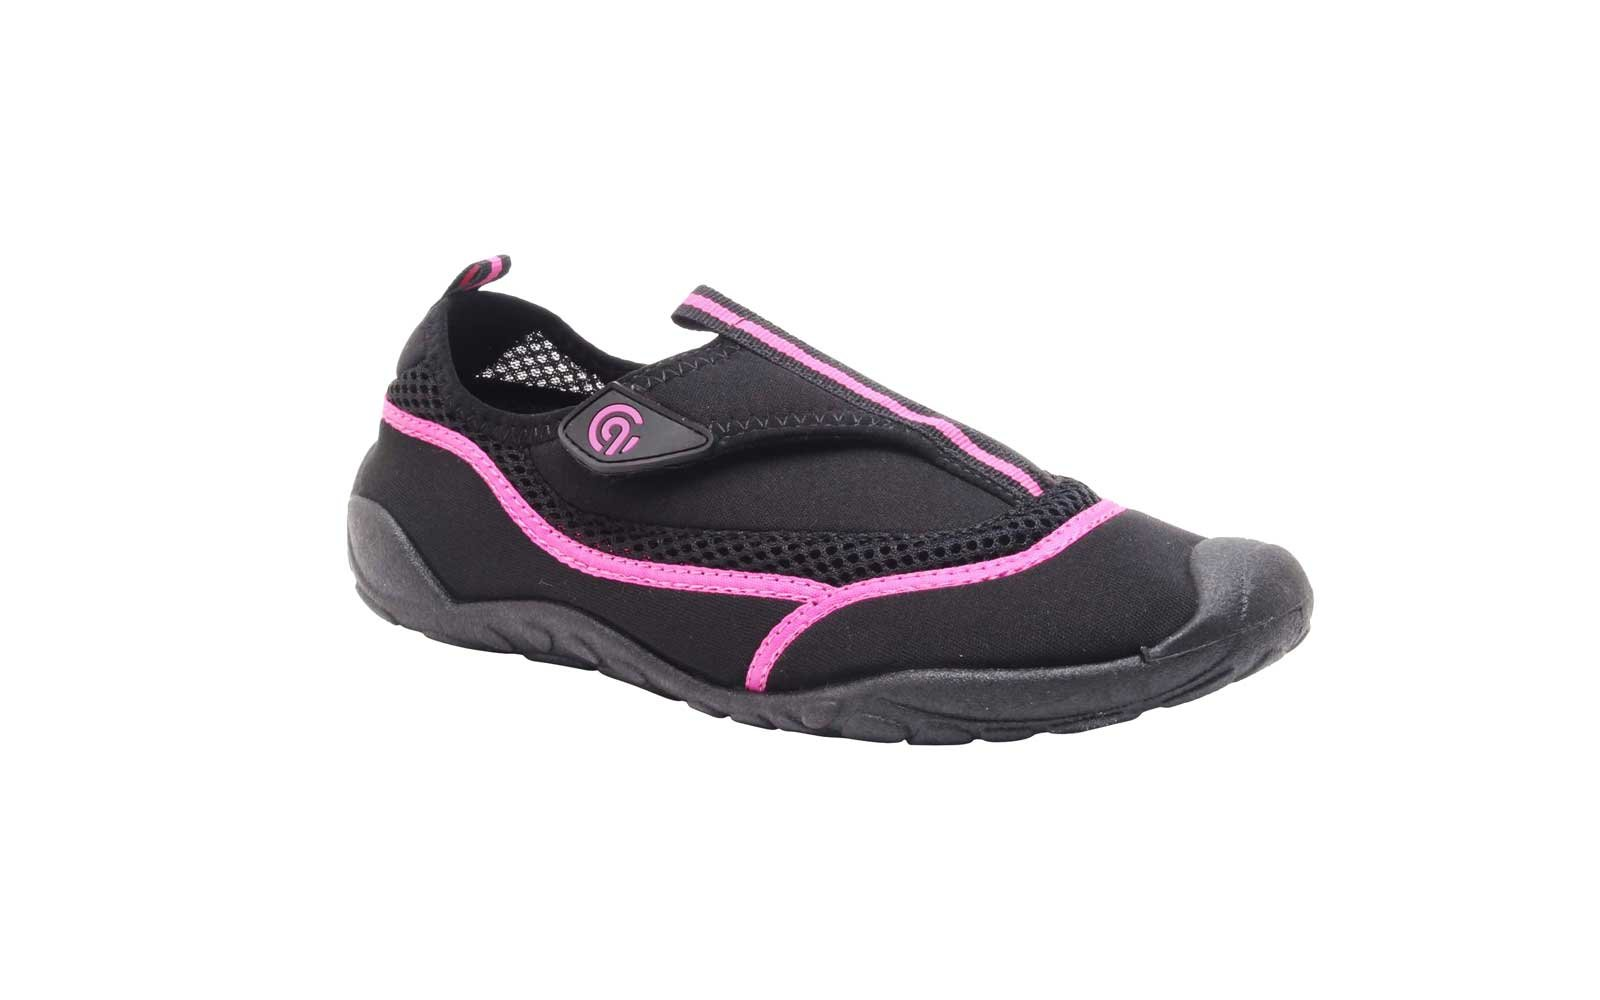 c9 champion womens water shoes